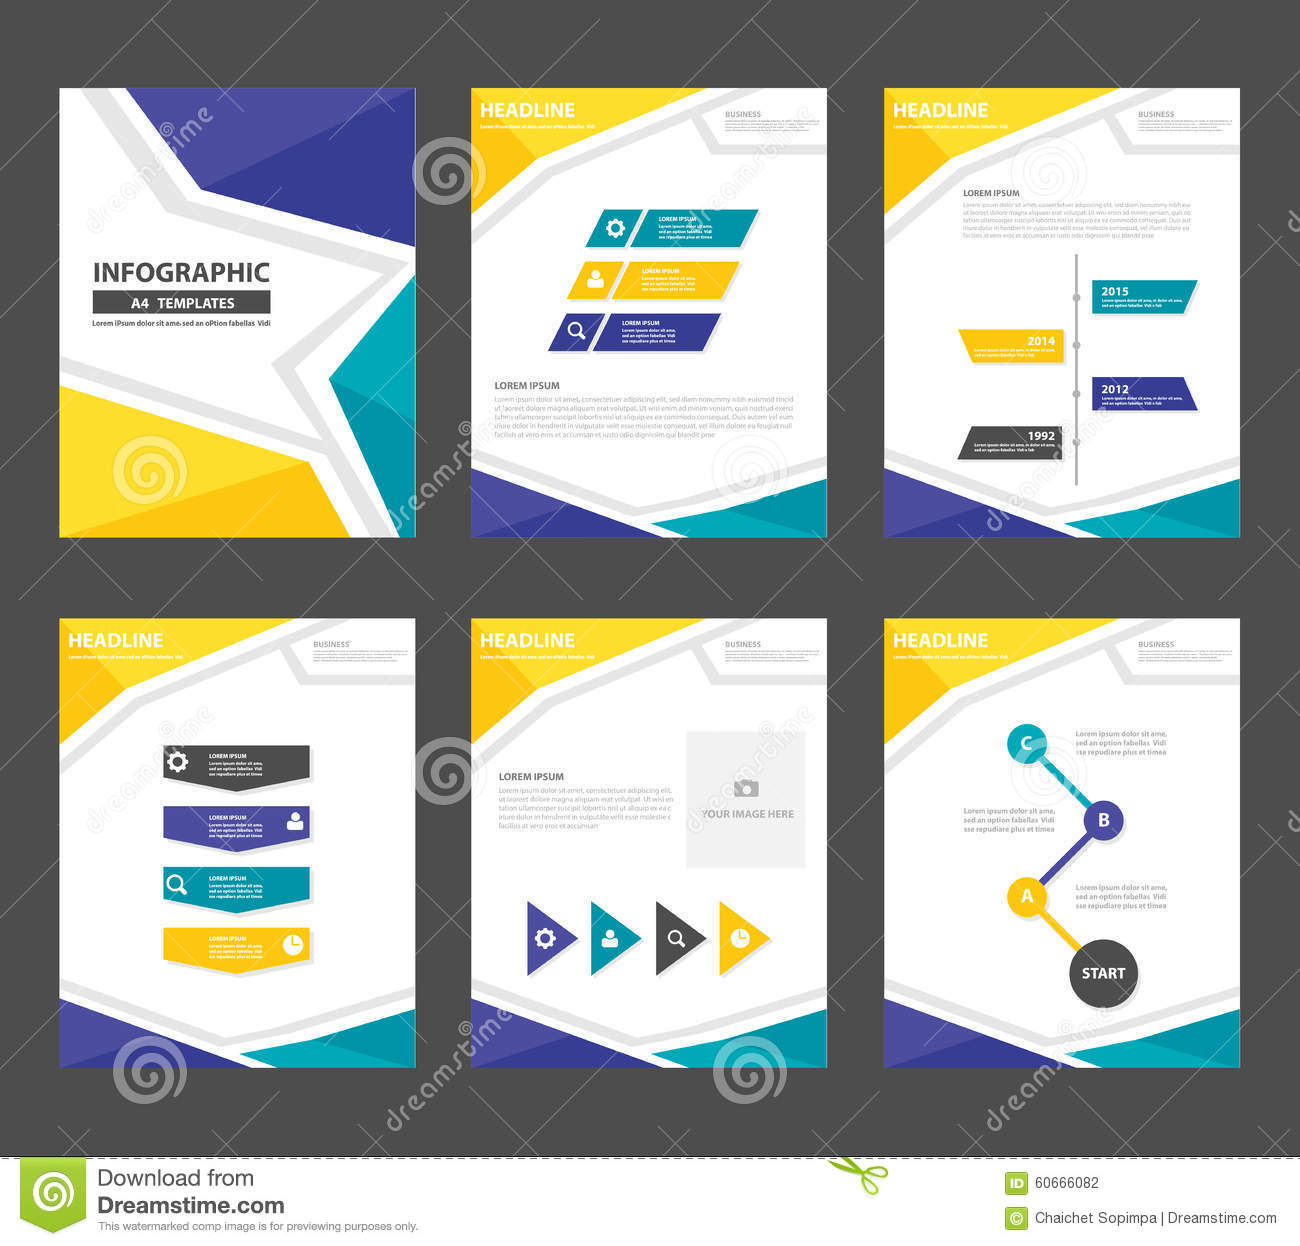 yellow green presentation template annual report brochure flyer, Report Presentation Template, Powerpoint templates